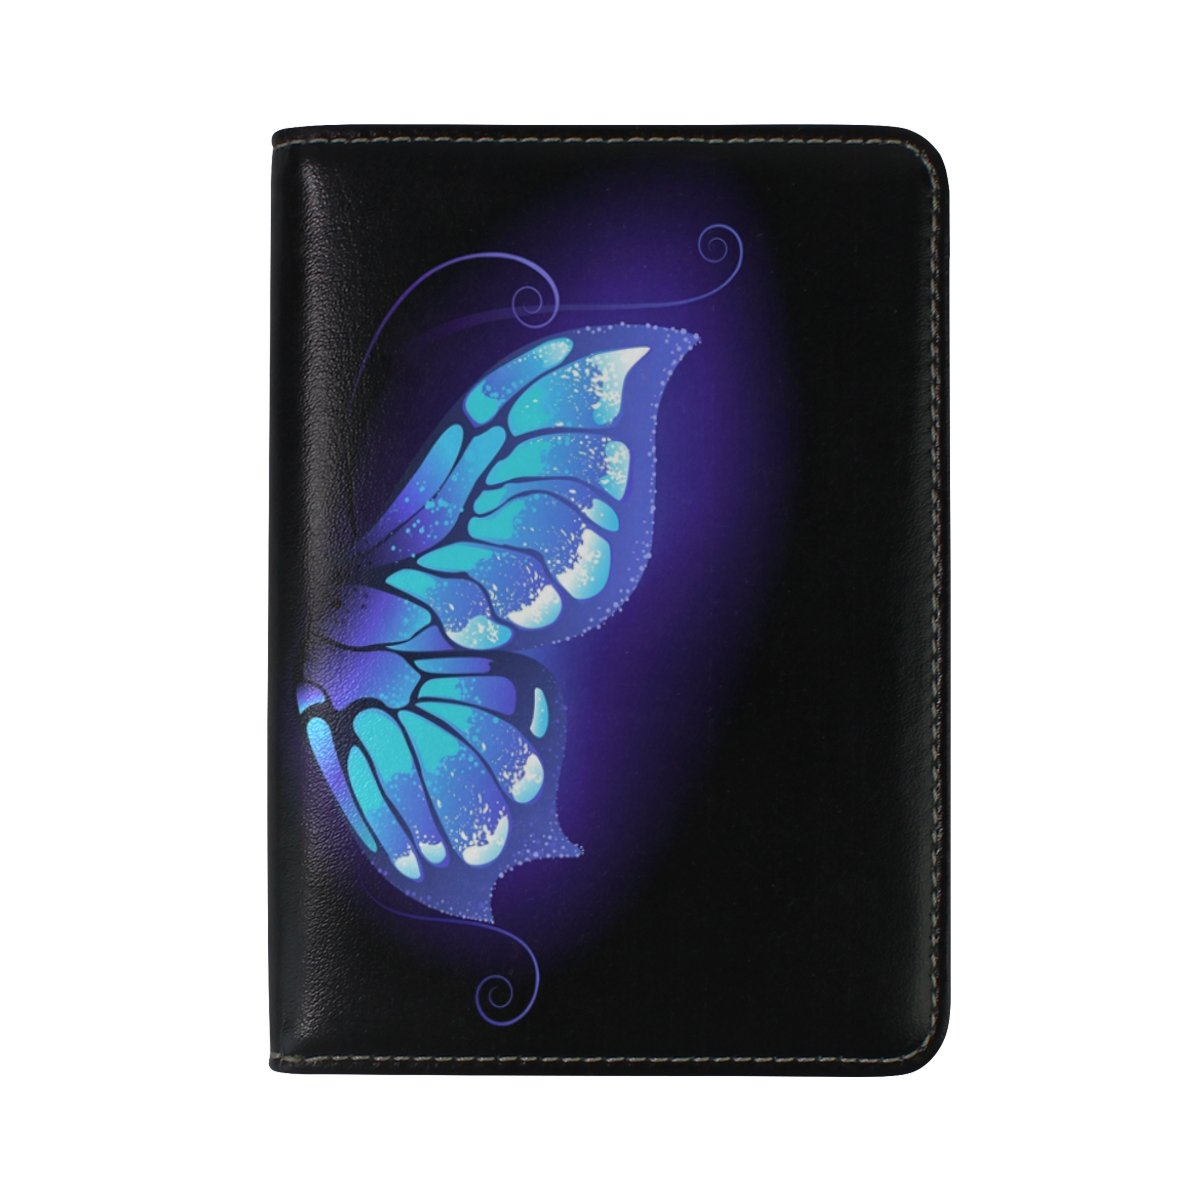 ALAZA Purple Butterfly Black Leather Passport Holder Cover Case Travel One Pocket